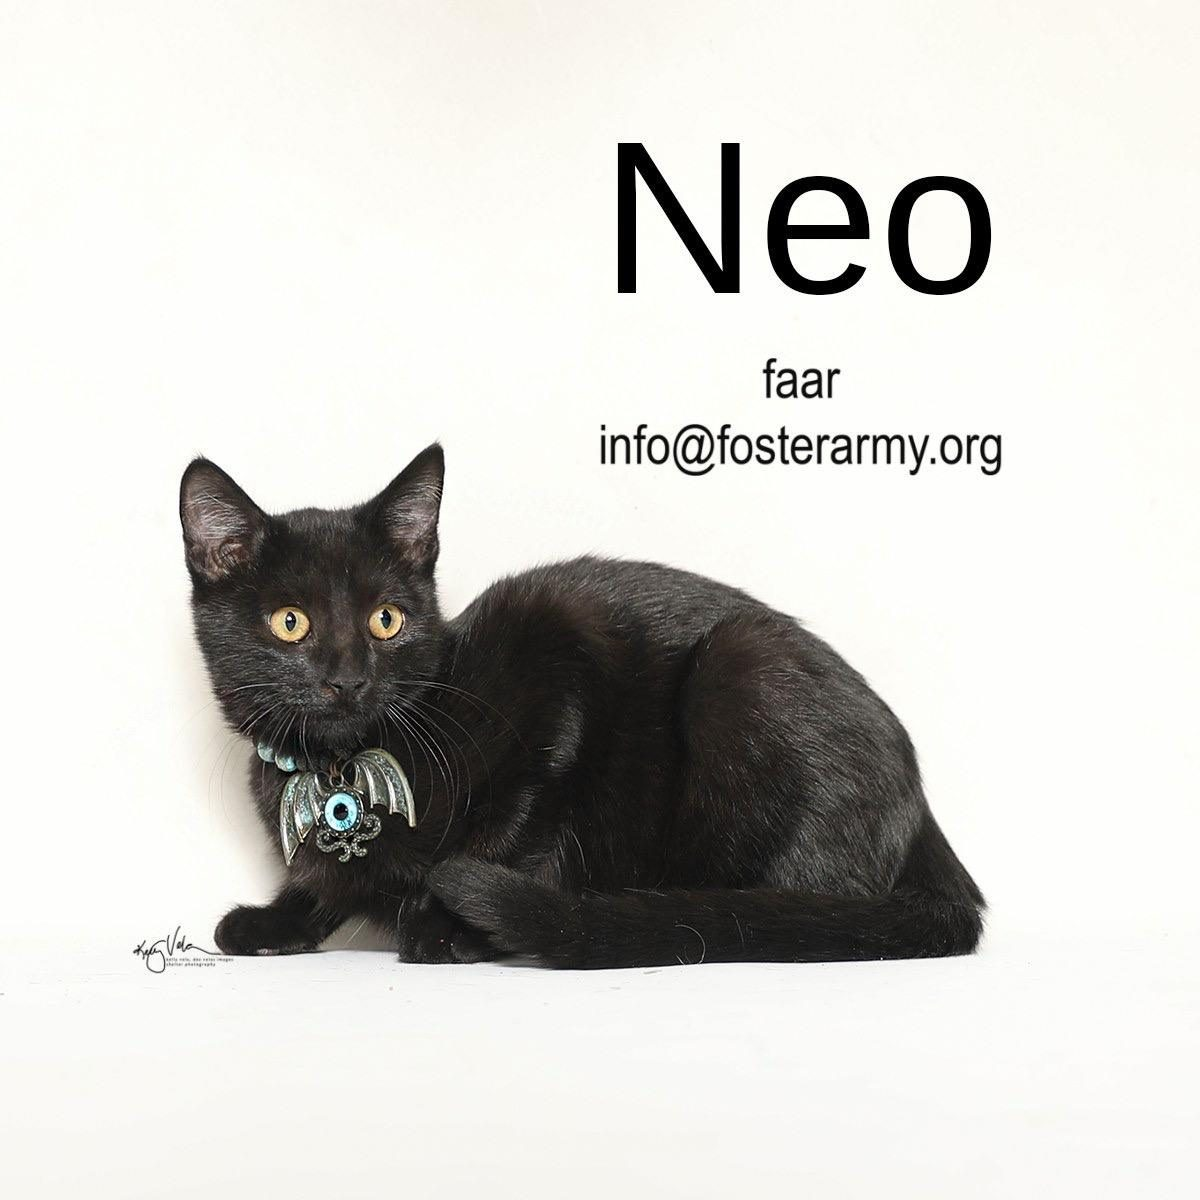 Adopt Neo the luckiest kitty with Foster Army Animal Rescue in Riverside, CA